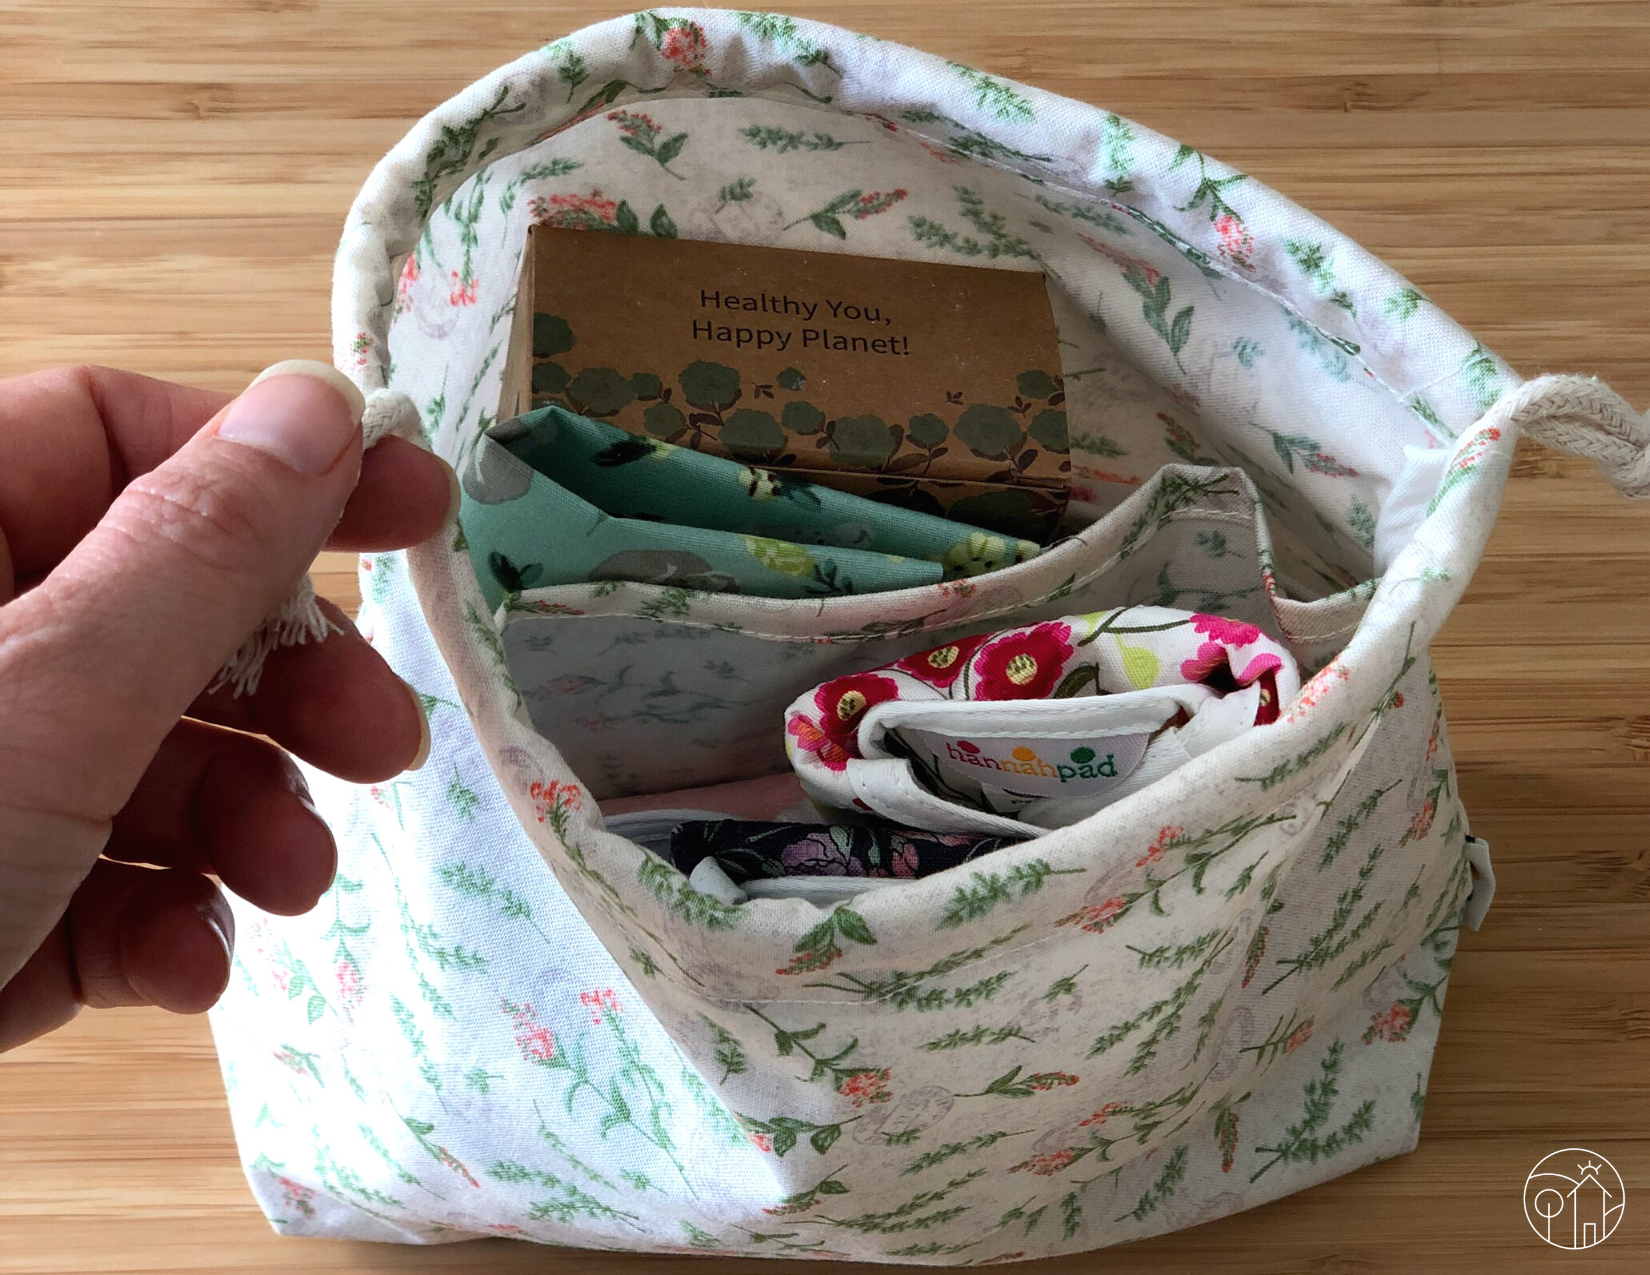 Overhead view of a wet bag, containing several cloth pads in various floral prints.